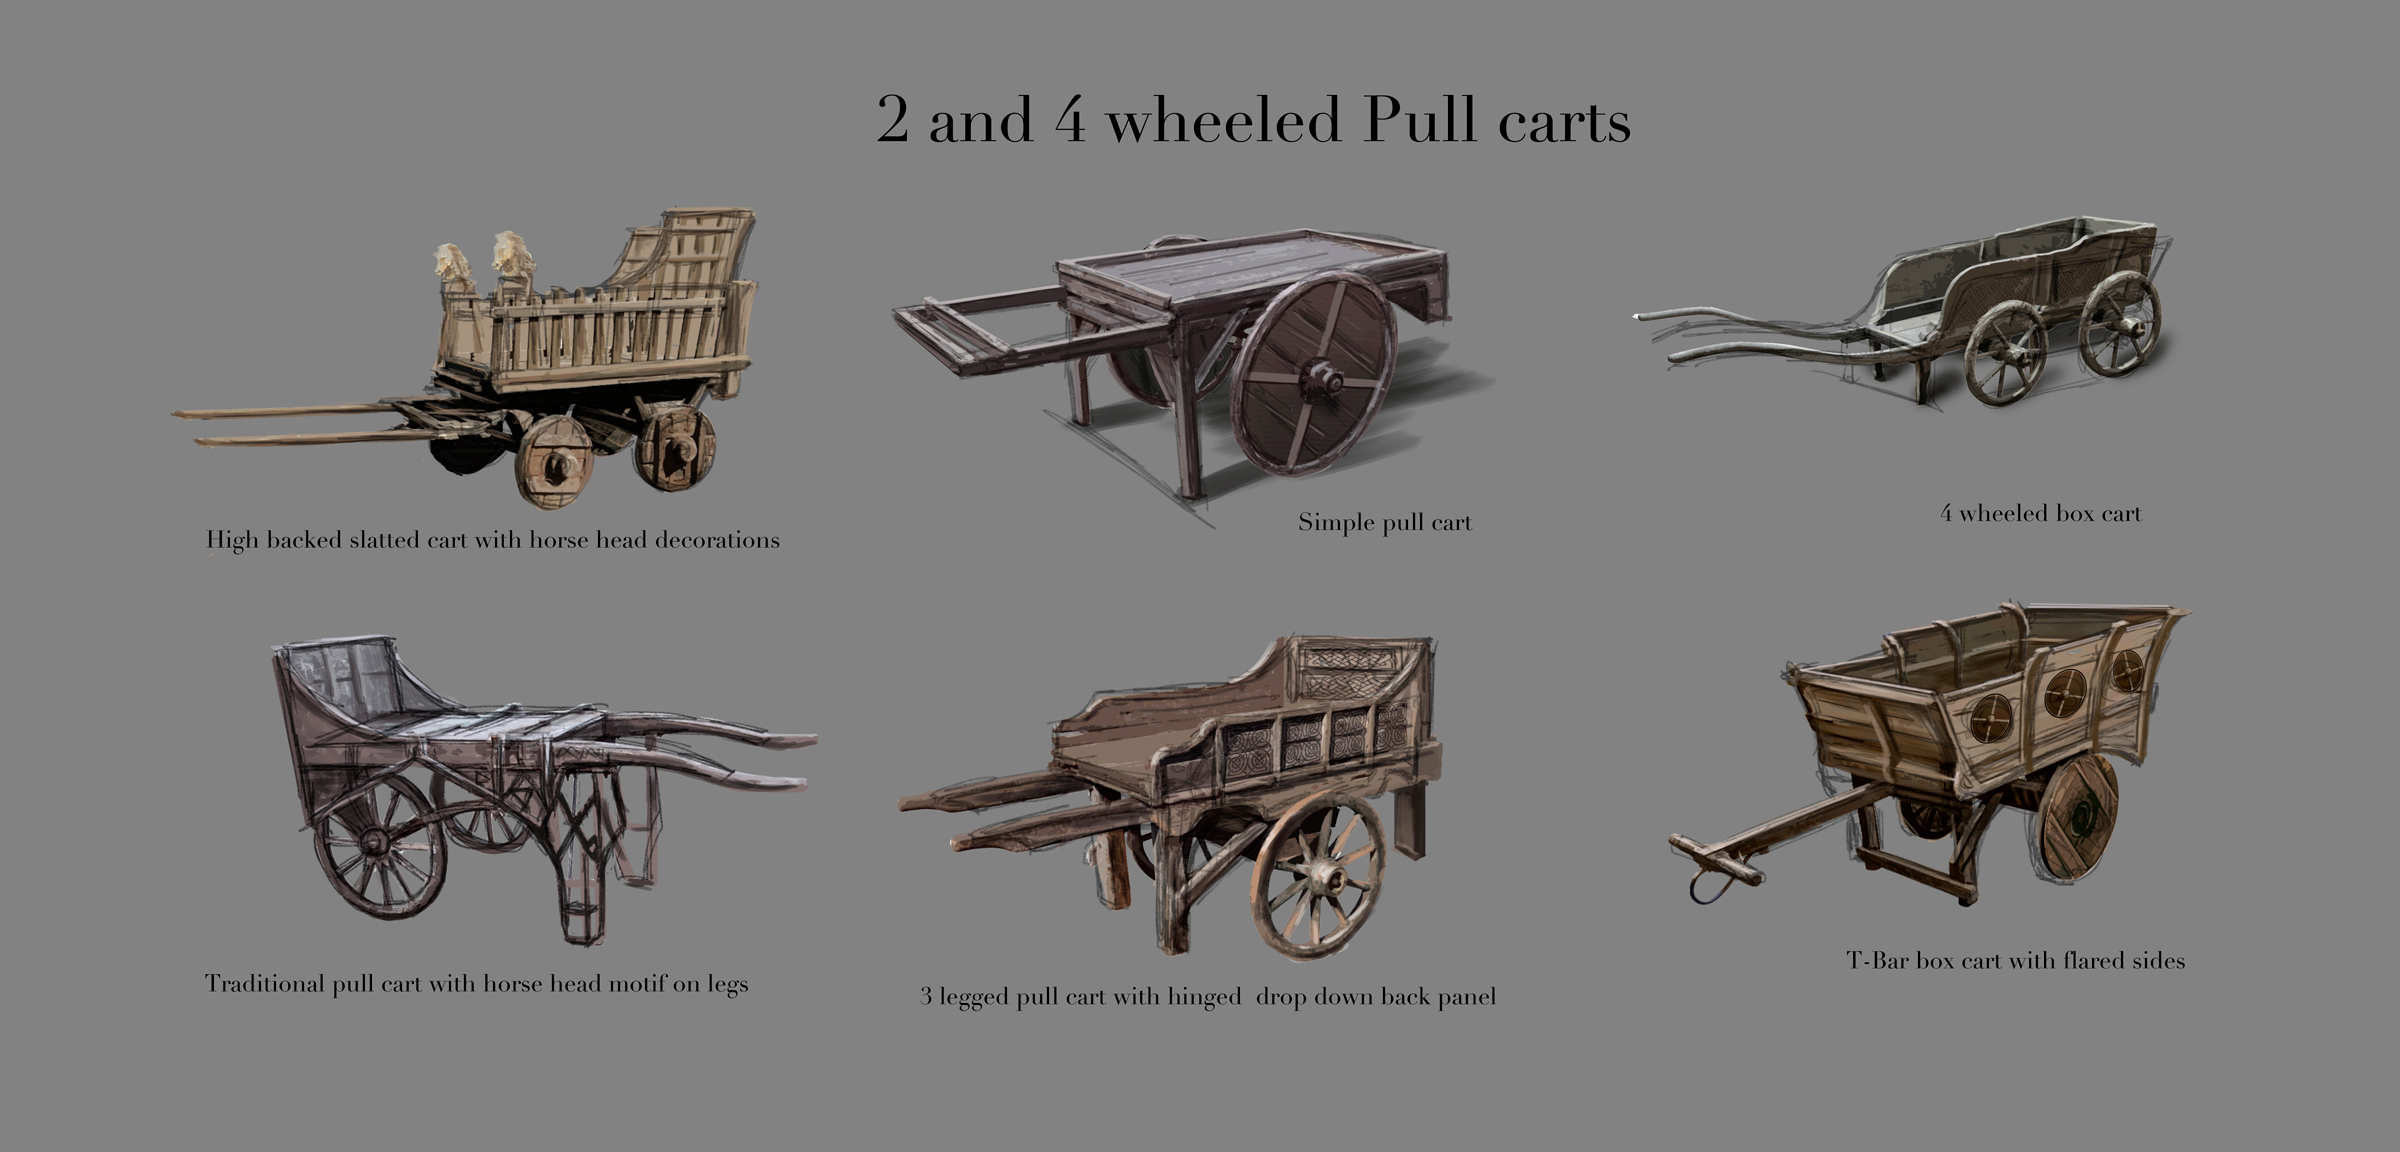 LOTRO_Riders_of_Rohan_2_and_4_wheeled_pull_carts